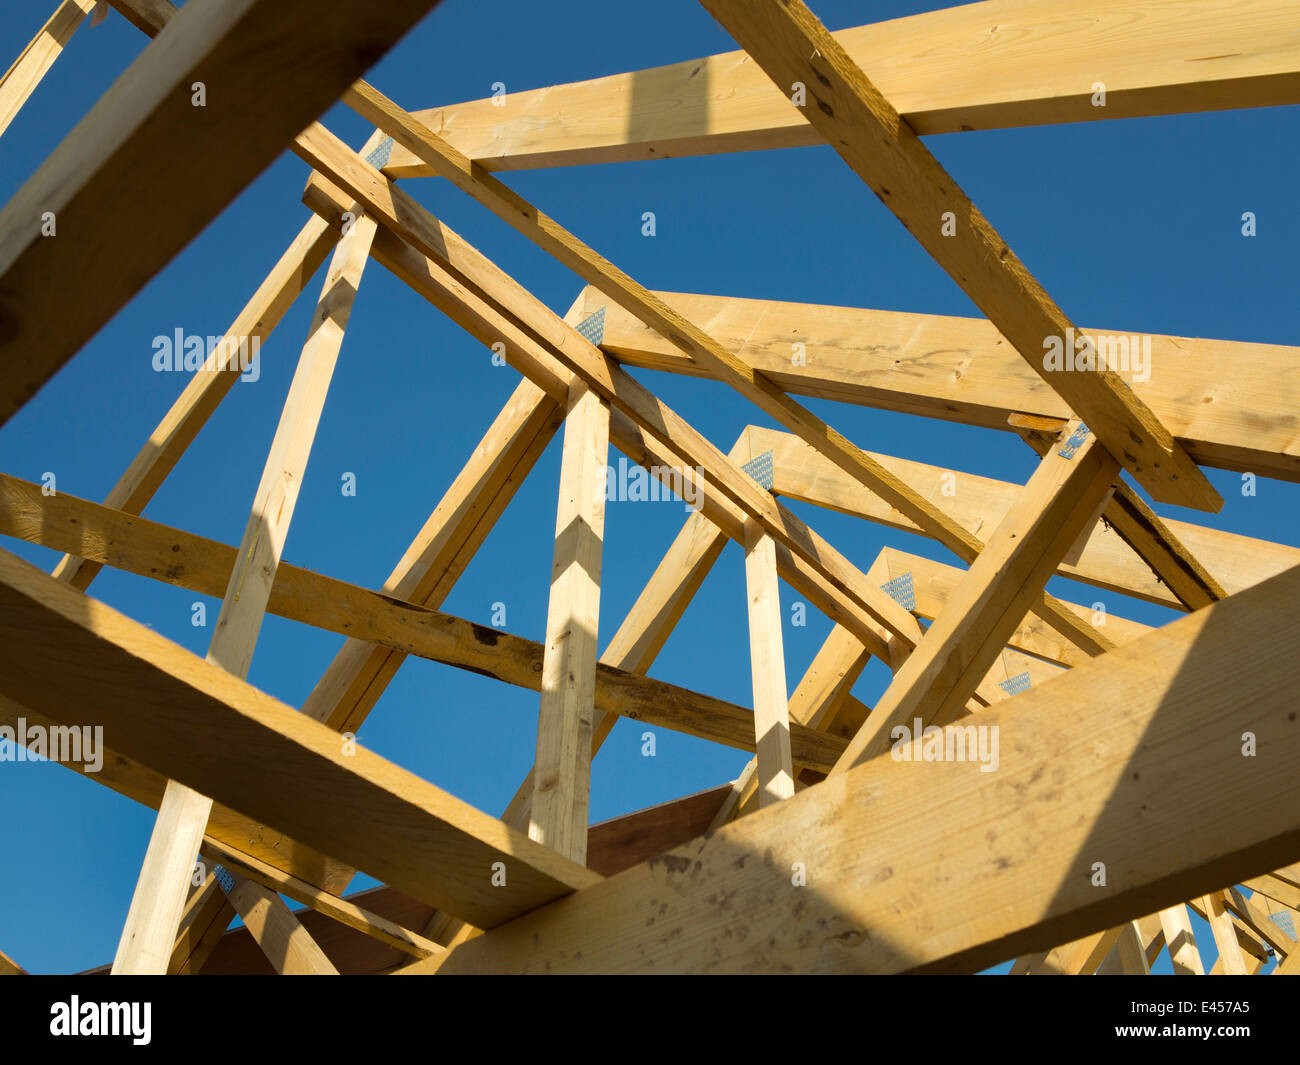 Prefabricated Roof Trusses High Resolution Stock Photography And Images Alamy